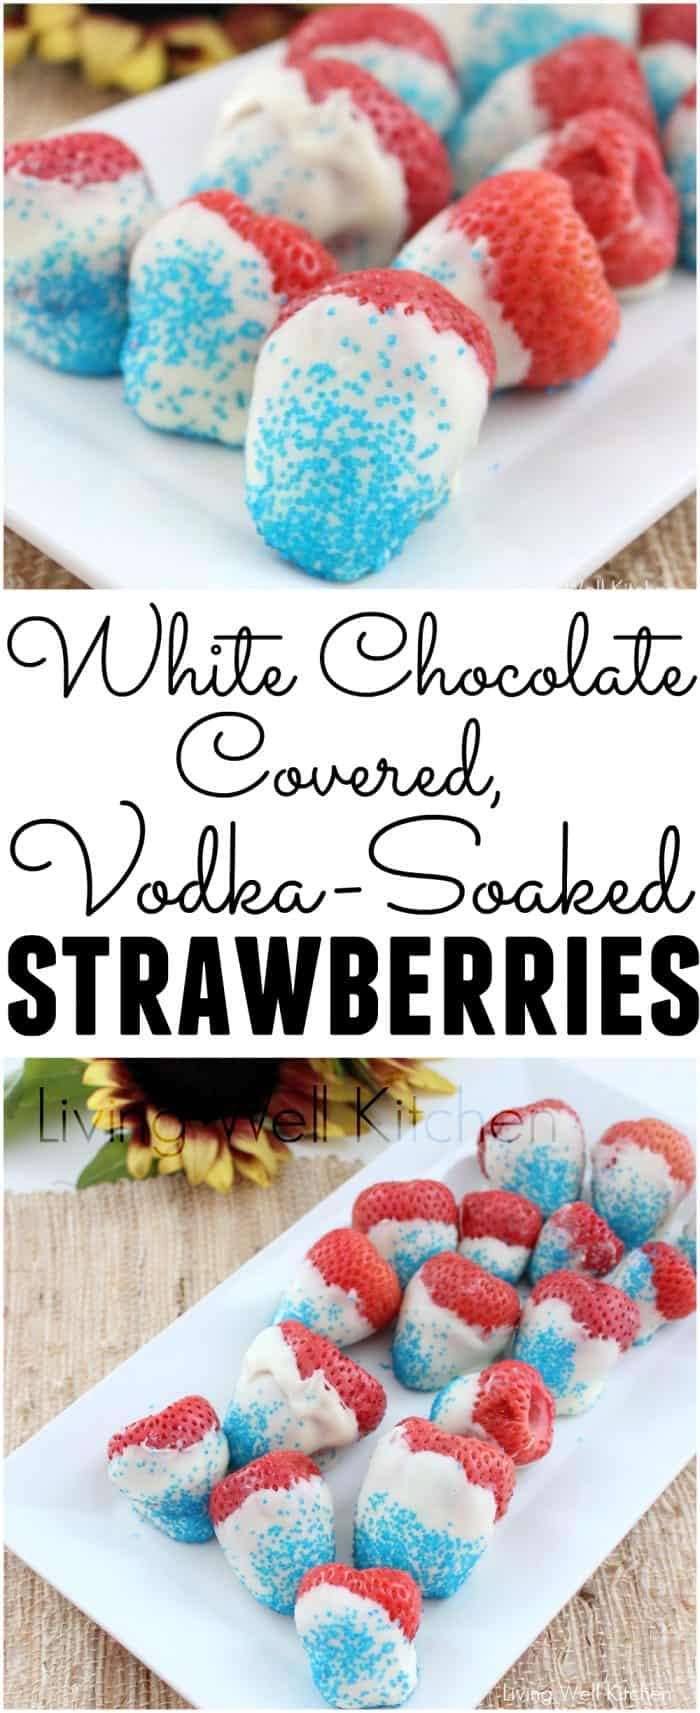 These Festive Drunk Strawberries from @memeinge are a fun patriotic adult treat. Soaking strawberries in vodka and covering with white chocolate make for a festive white chocolate covered strawberries for the over-21 crowd. Gluten free, can be dairy free